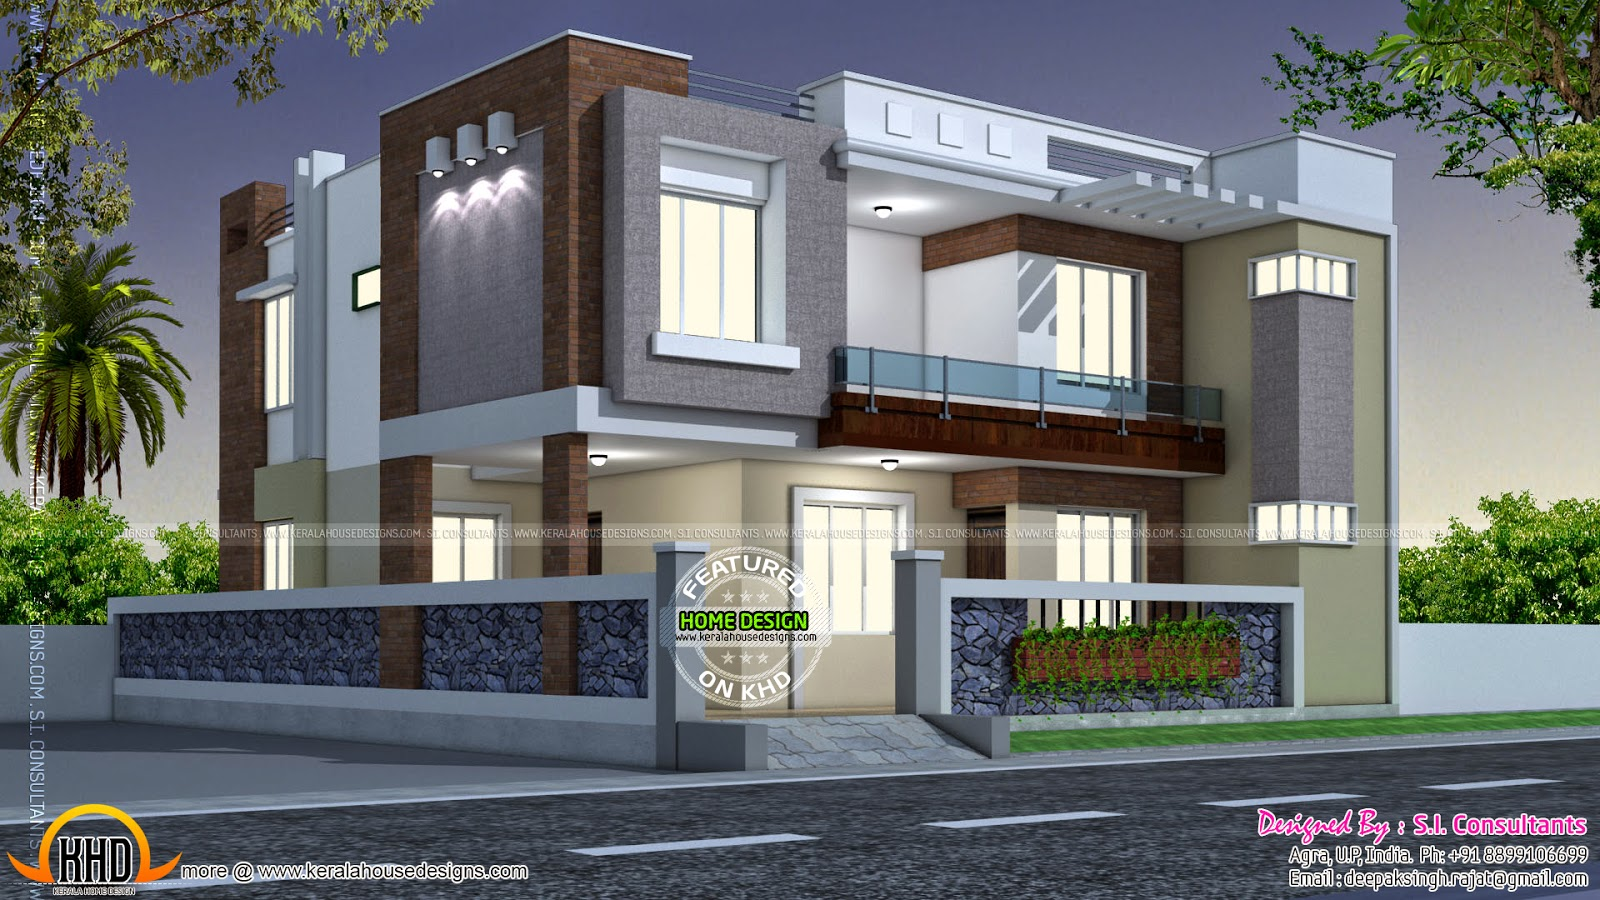 Modern indian home design front view joy studio design for Indian home front design